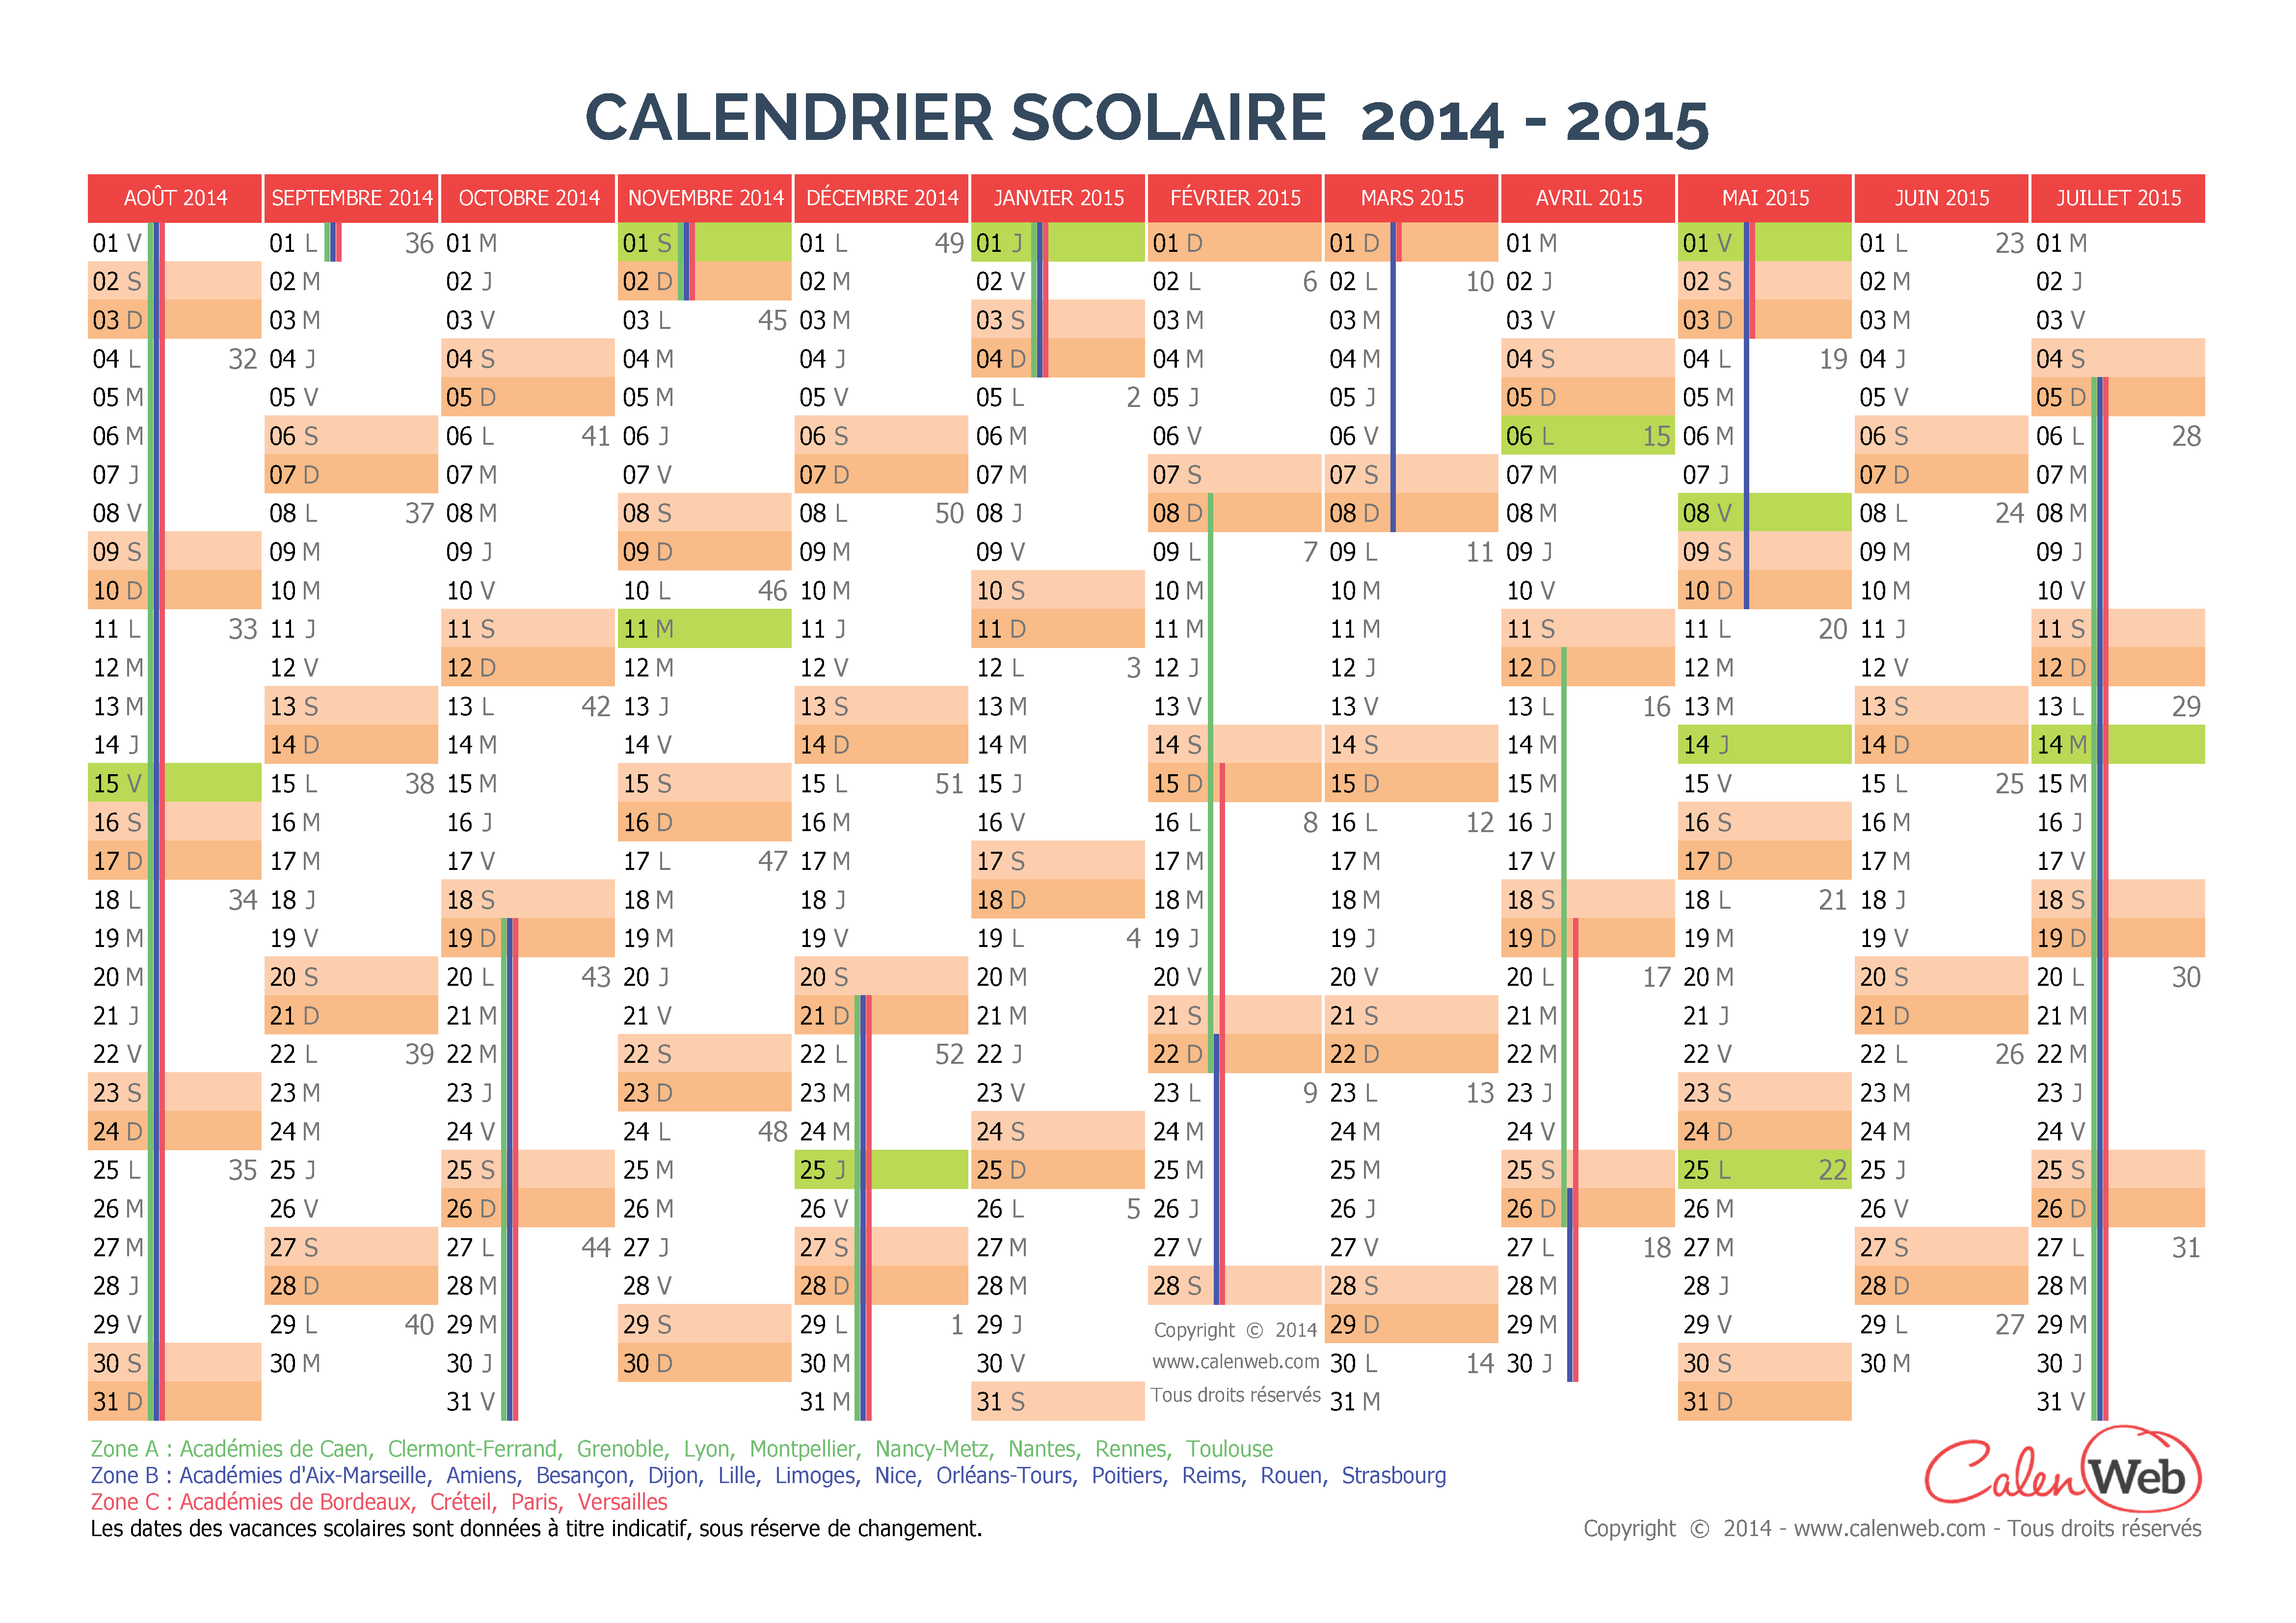 calendrier scolaire annuel 2014 2015 avec affichage des. Black Bedroom Furniture Sets. Home Design Ideas